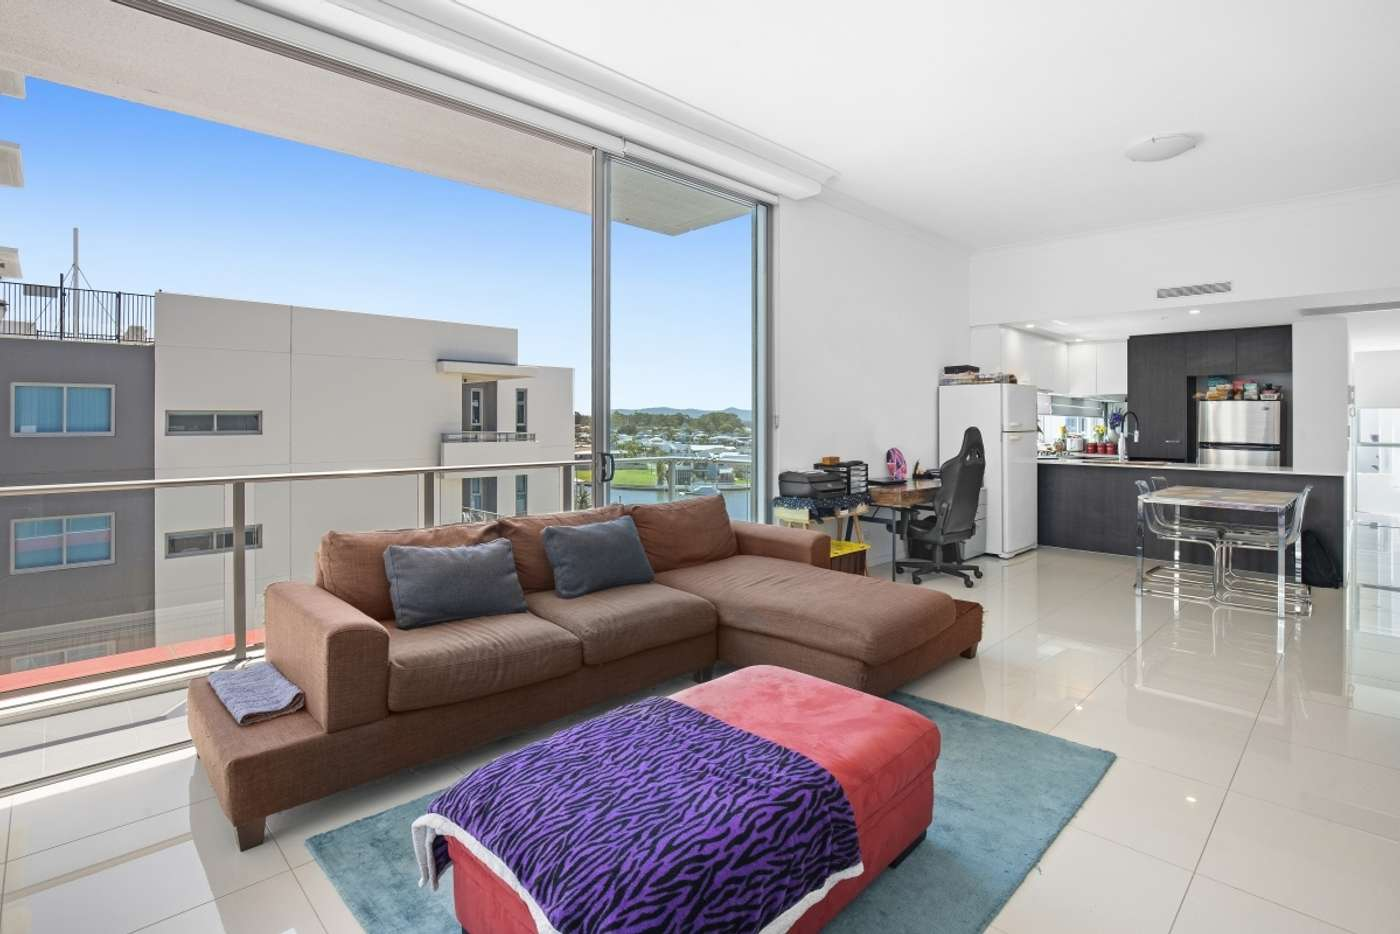 Sixth view of Homely unit listing, 4501/25-31 East Quay Drive, Biggera Waters QLD 4216